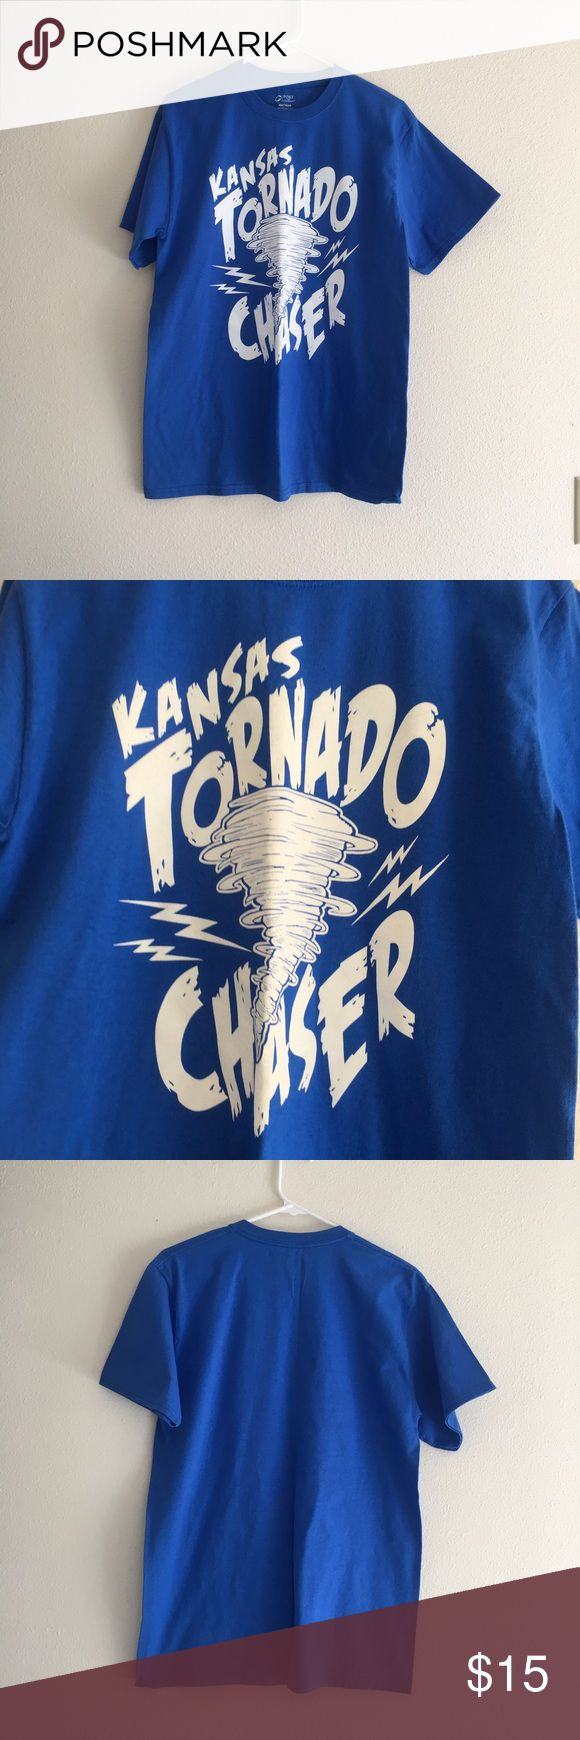 Kansas Tornado Chaser Tee Item Just added. Description coming next! Stay tuned   ☑️No Pets  ☑️Non-Smoking home  ☑️Every item steamed throughly before shipped!   Ships from Santa Monica, CA  Follow me on Instagram! @koukil1908 ask to have a video of the item ✌️ Tops Tees - Short Sleeve